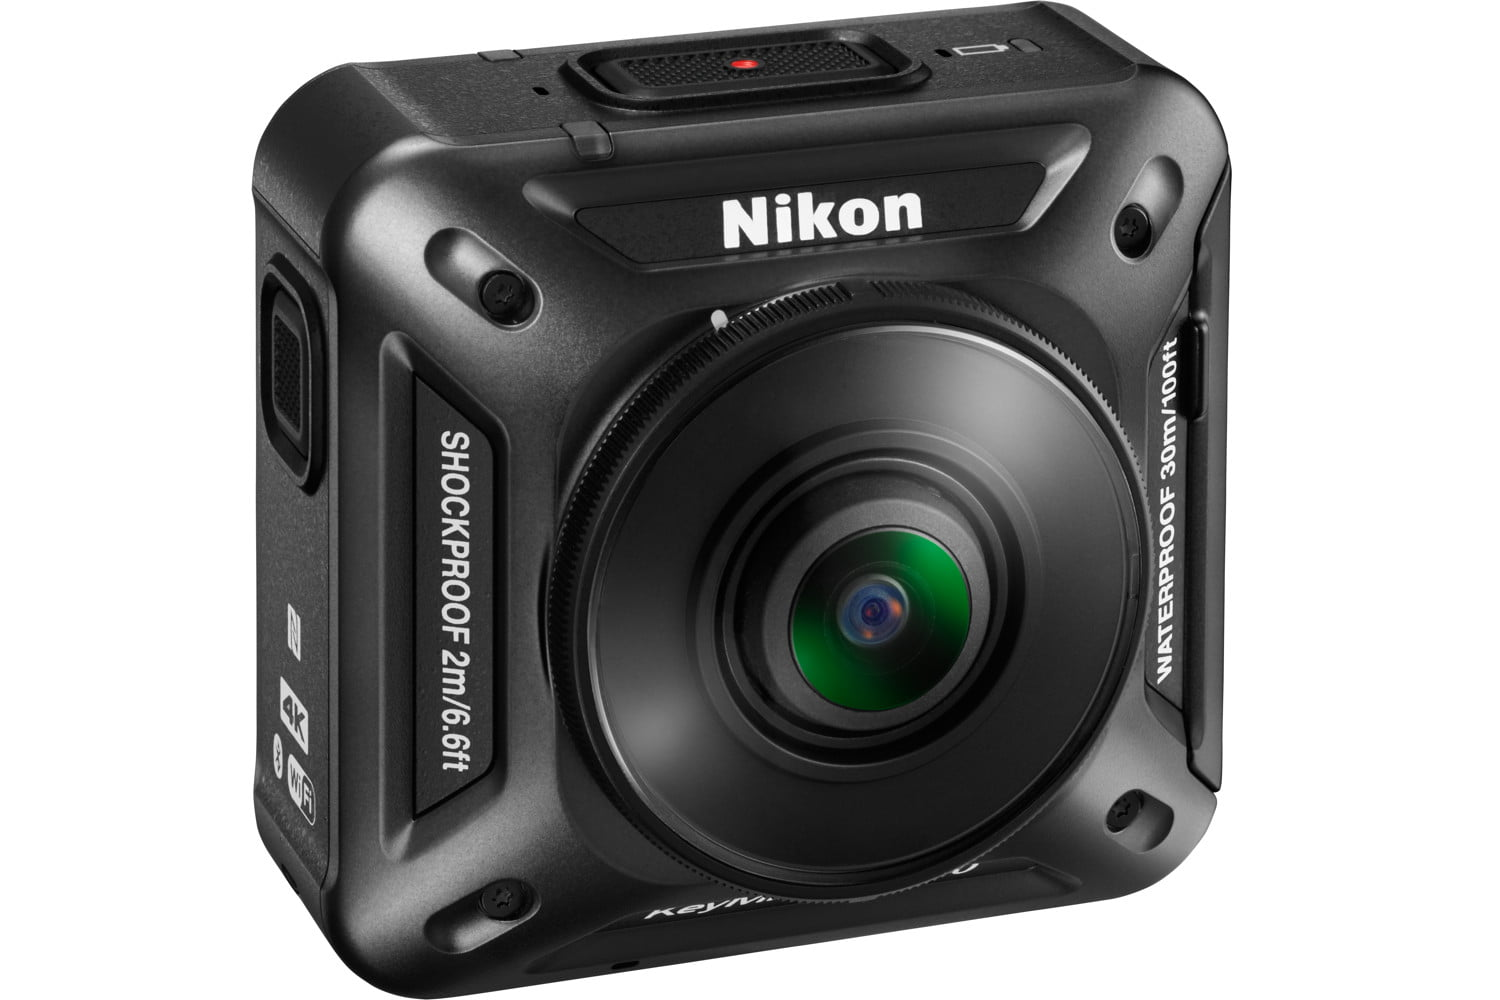 nikon keymission 170 80 action cam keymission360 front right